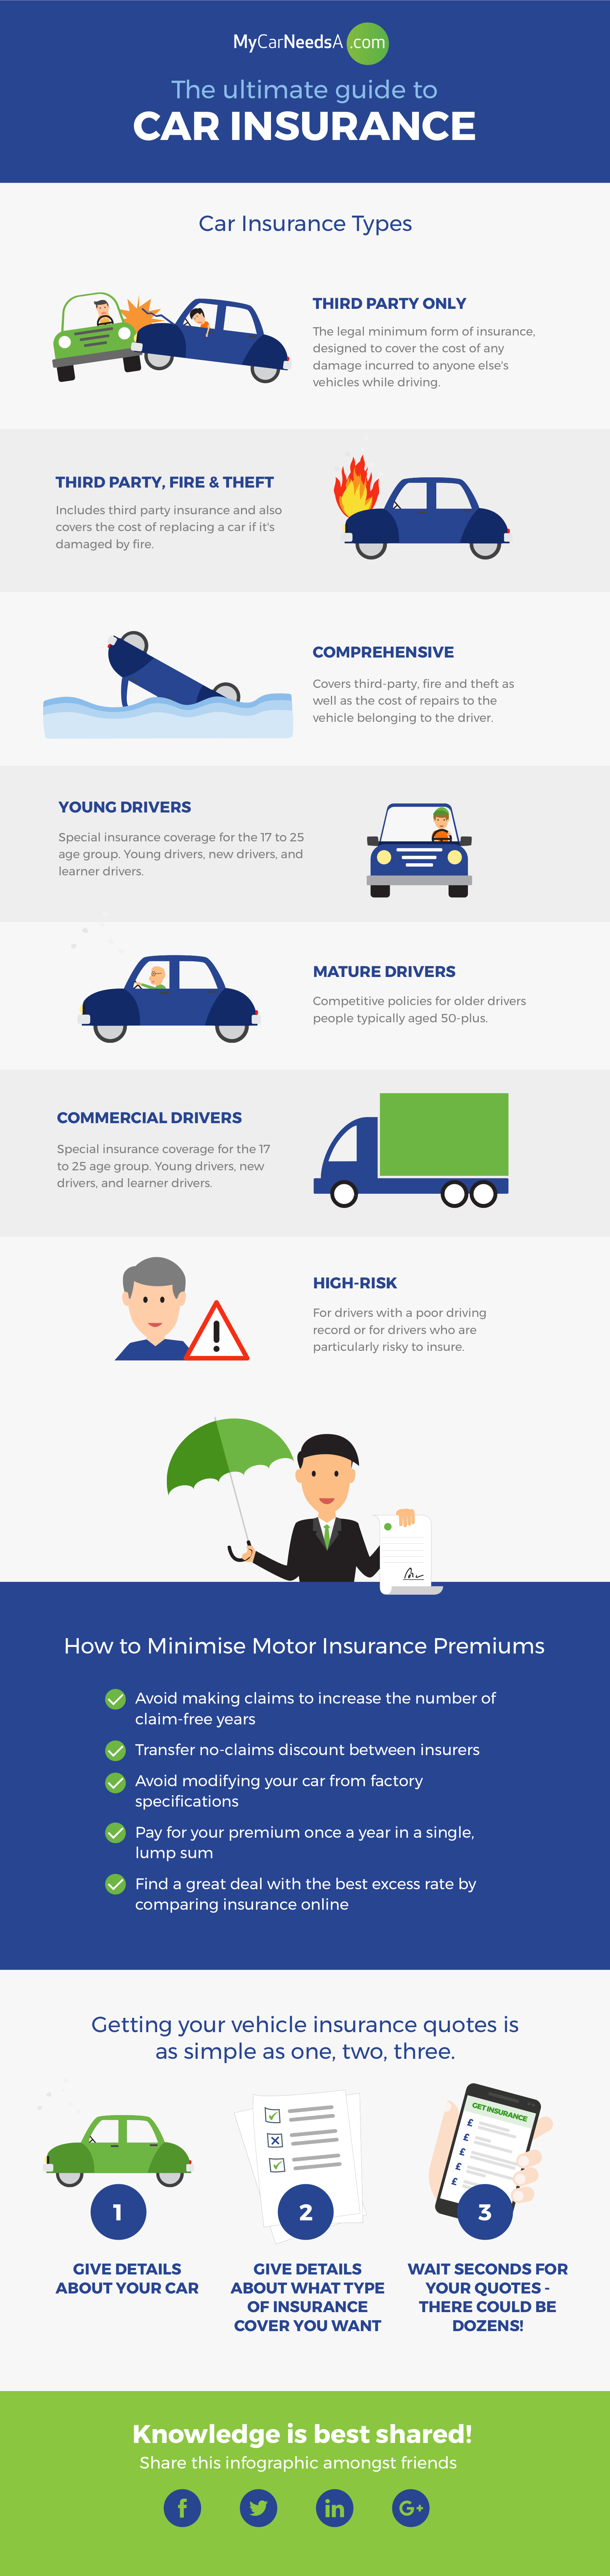 Guide to Car Insurance